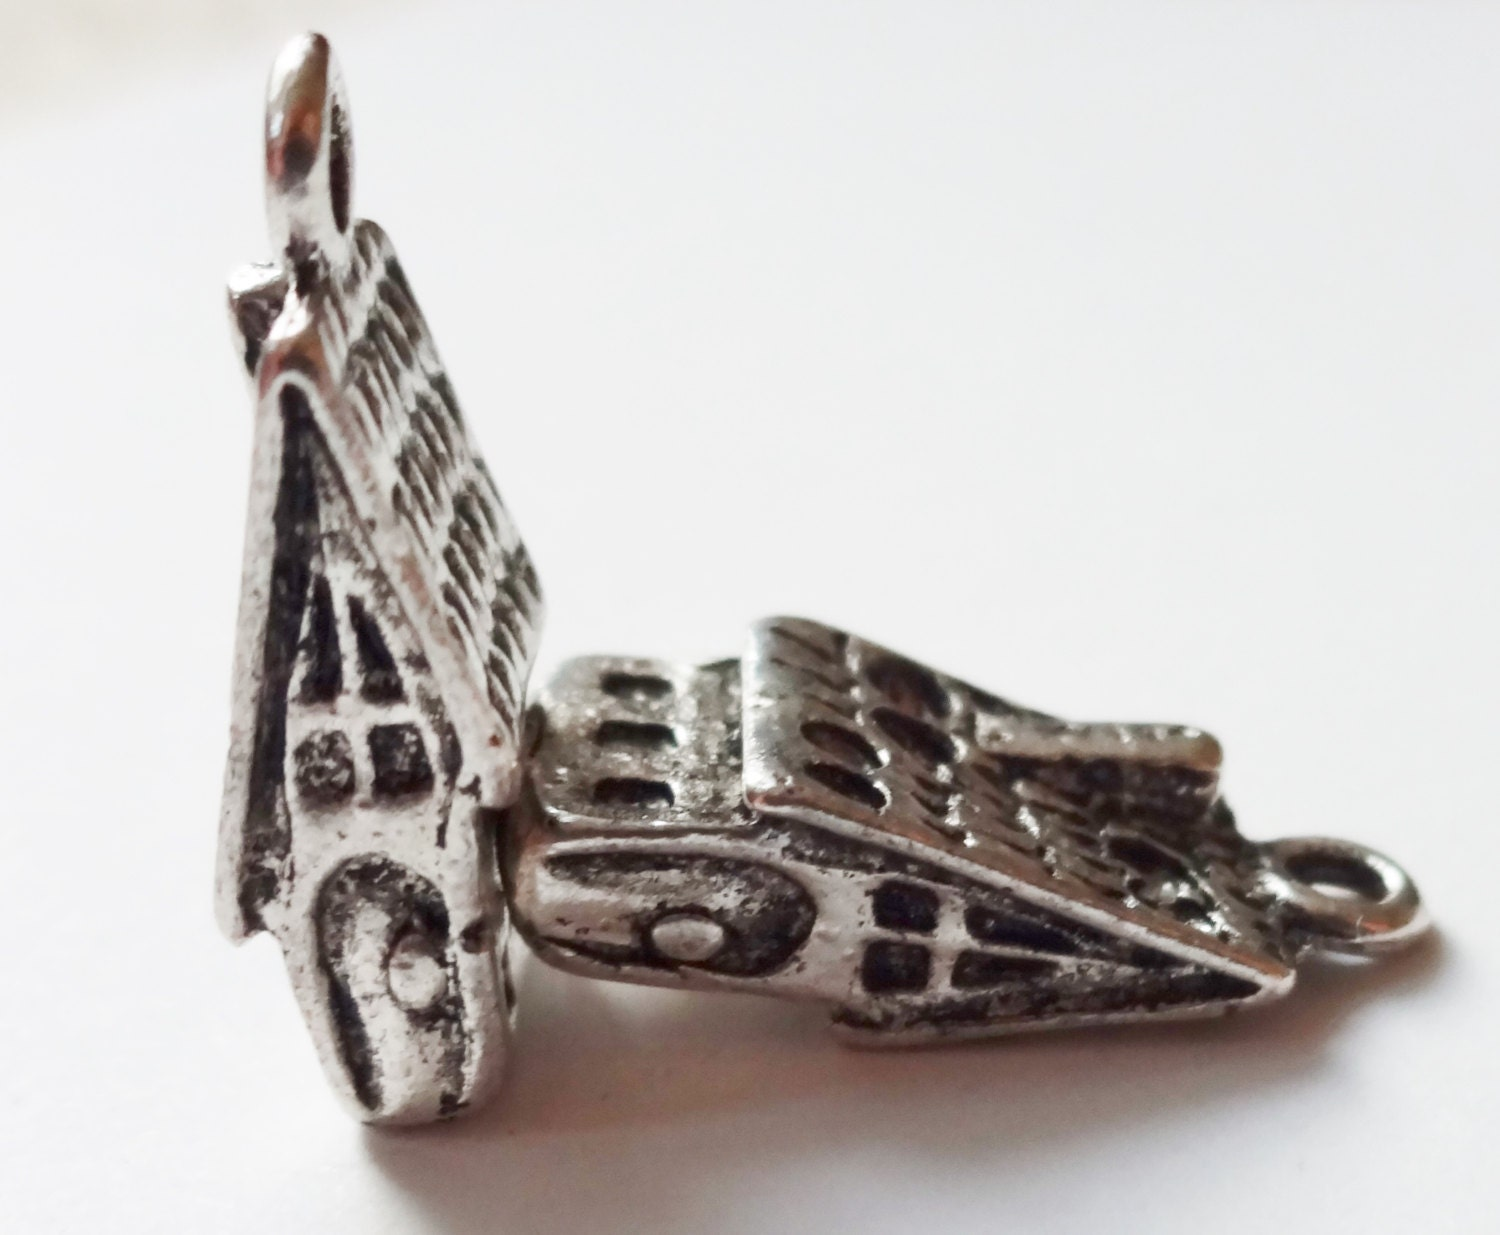 8 Cabin Charms 3d 17x7x2mm From Charmsfindingsplus On